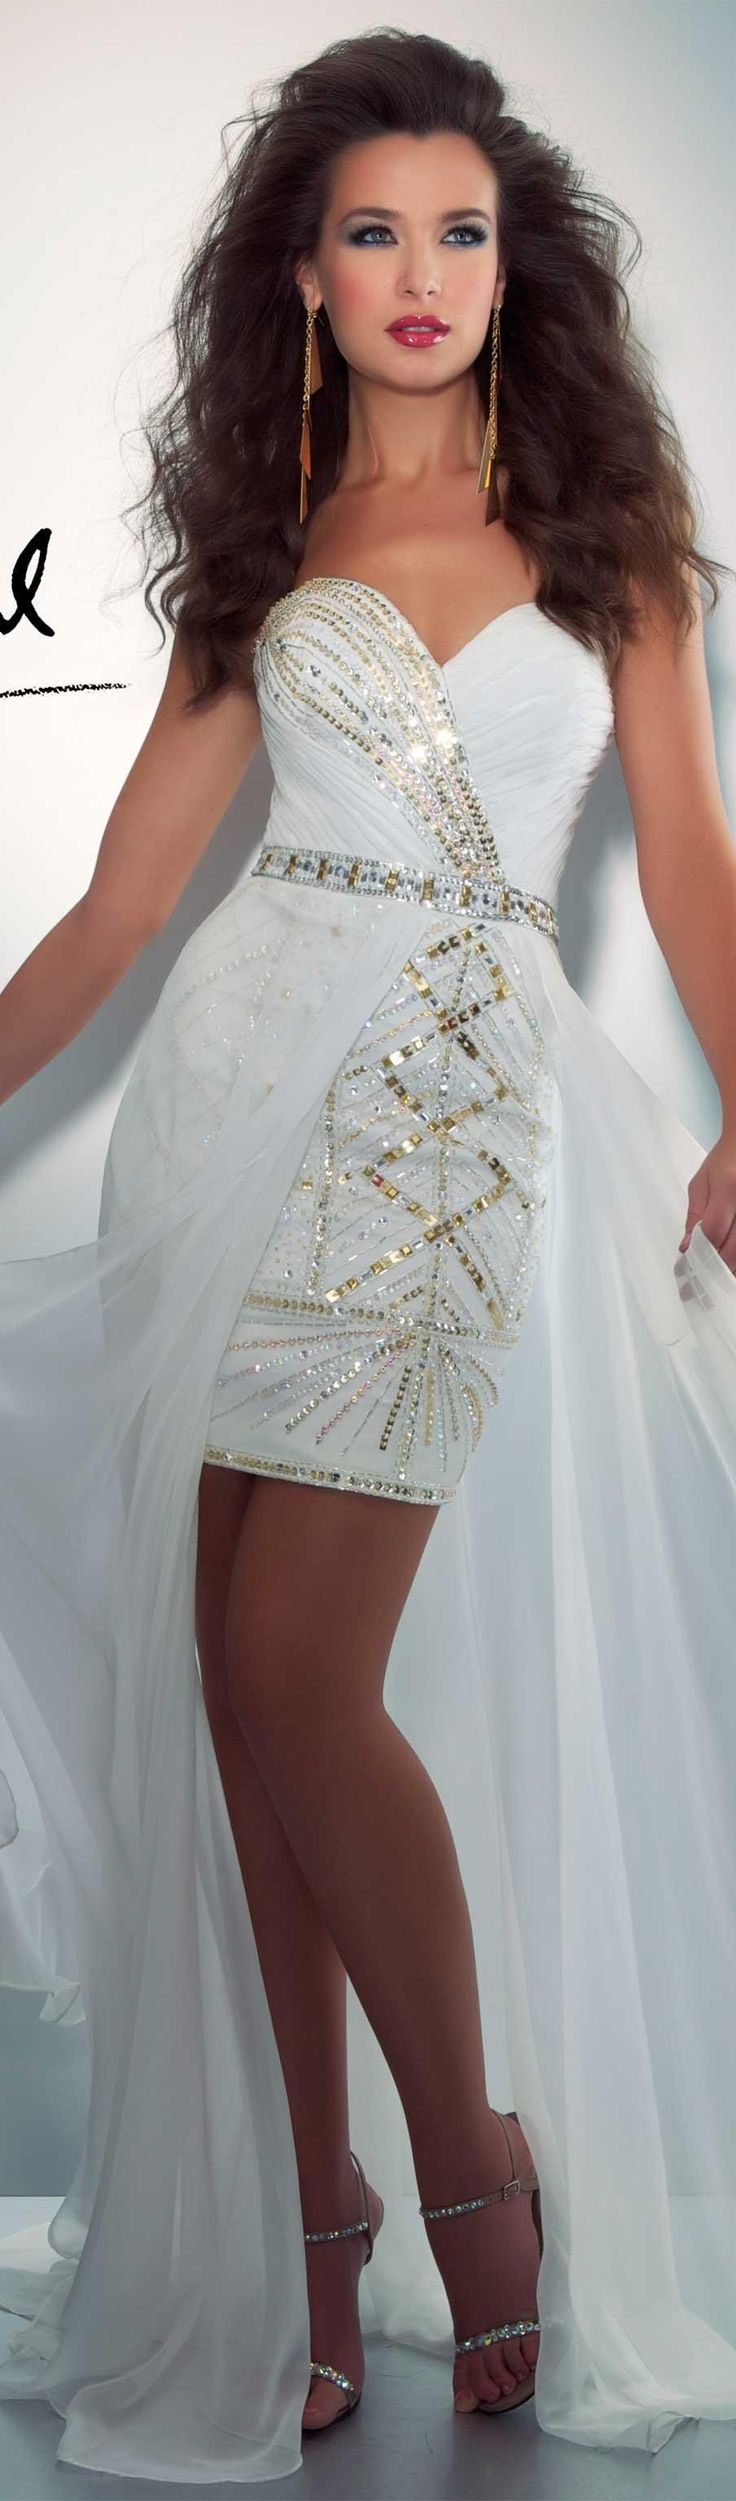 Mac Duggal couture dress ivory / gold #strapless #white #dress CASSANDRA STONE  STYLE 76492A